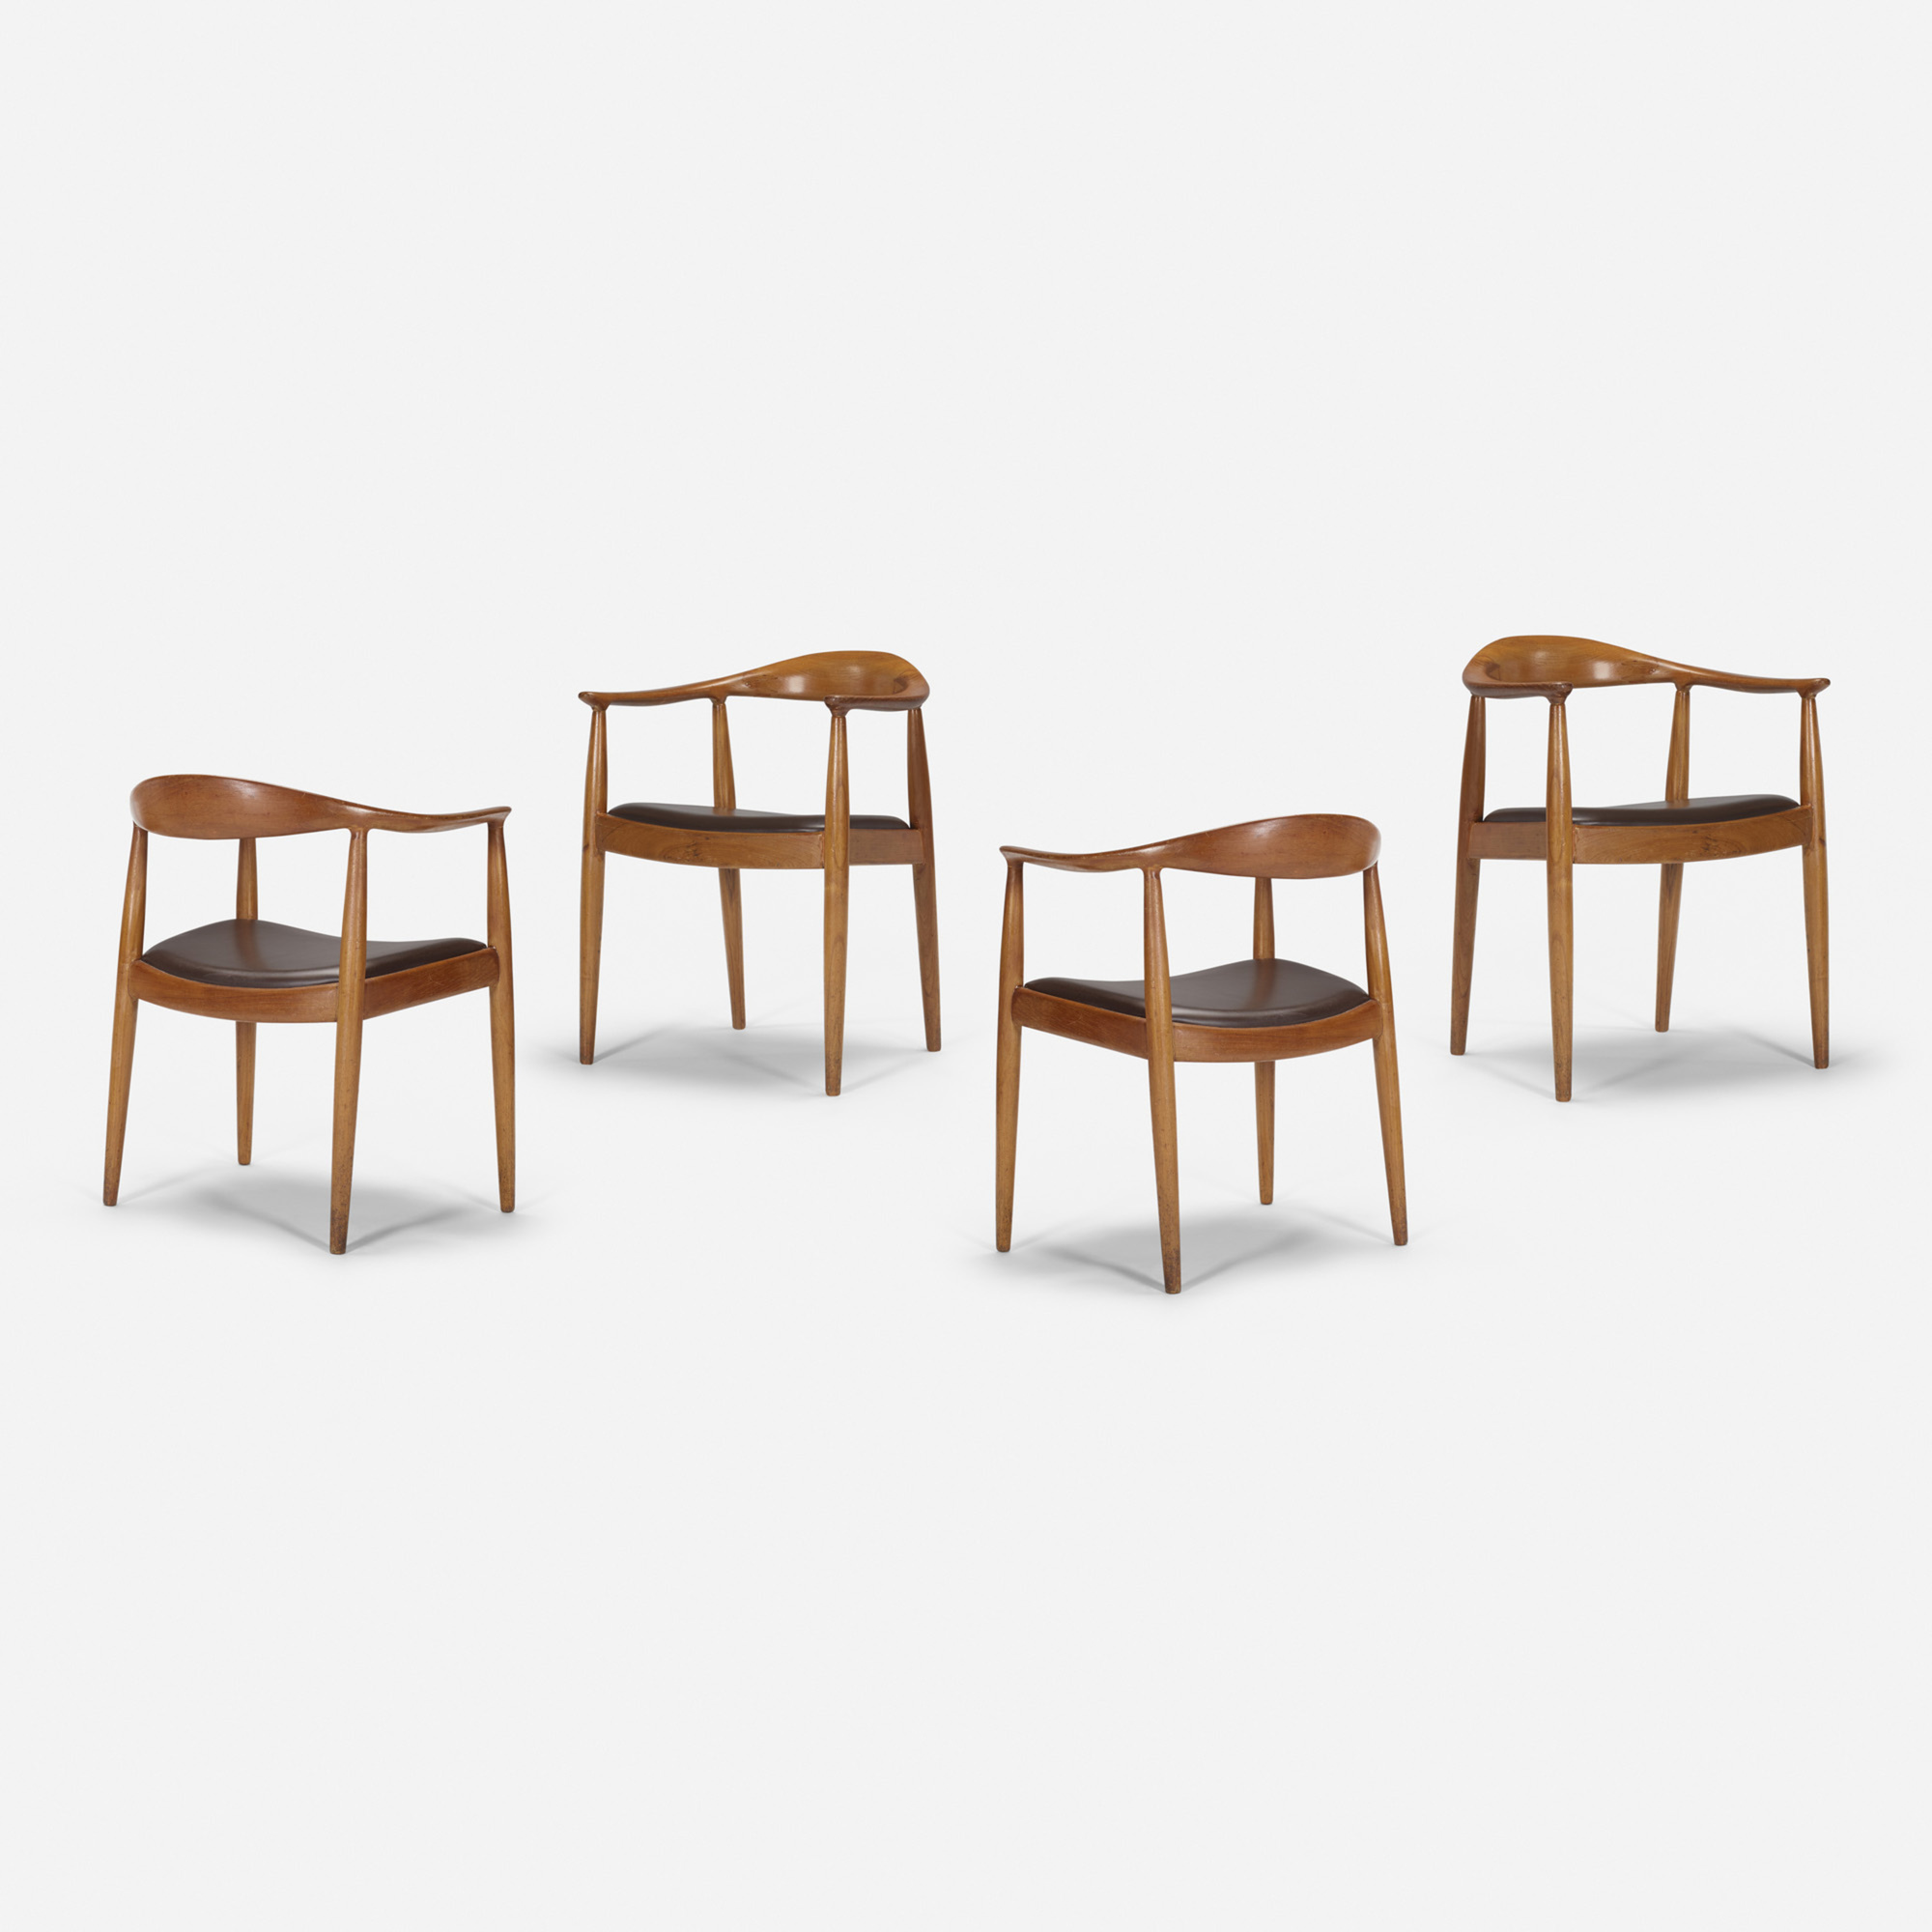 402: Hans J. Wegner / The Chairs from the mezzanine of the Grill Room, set of four (1 of 1)